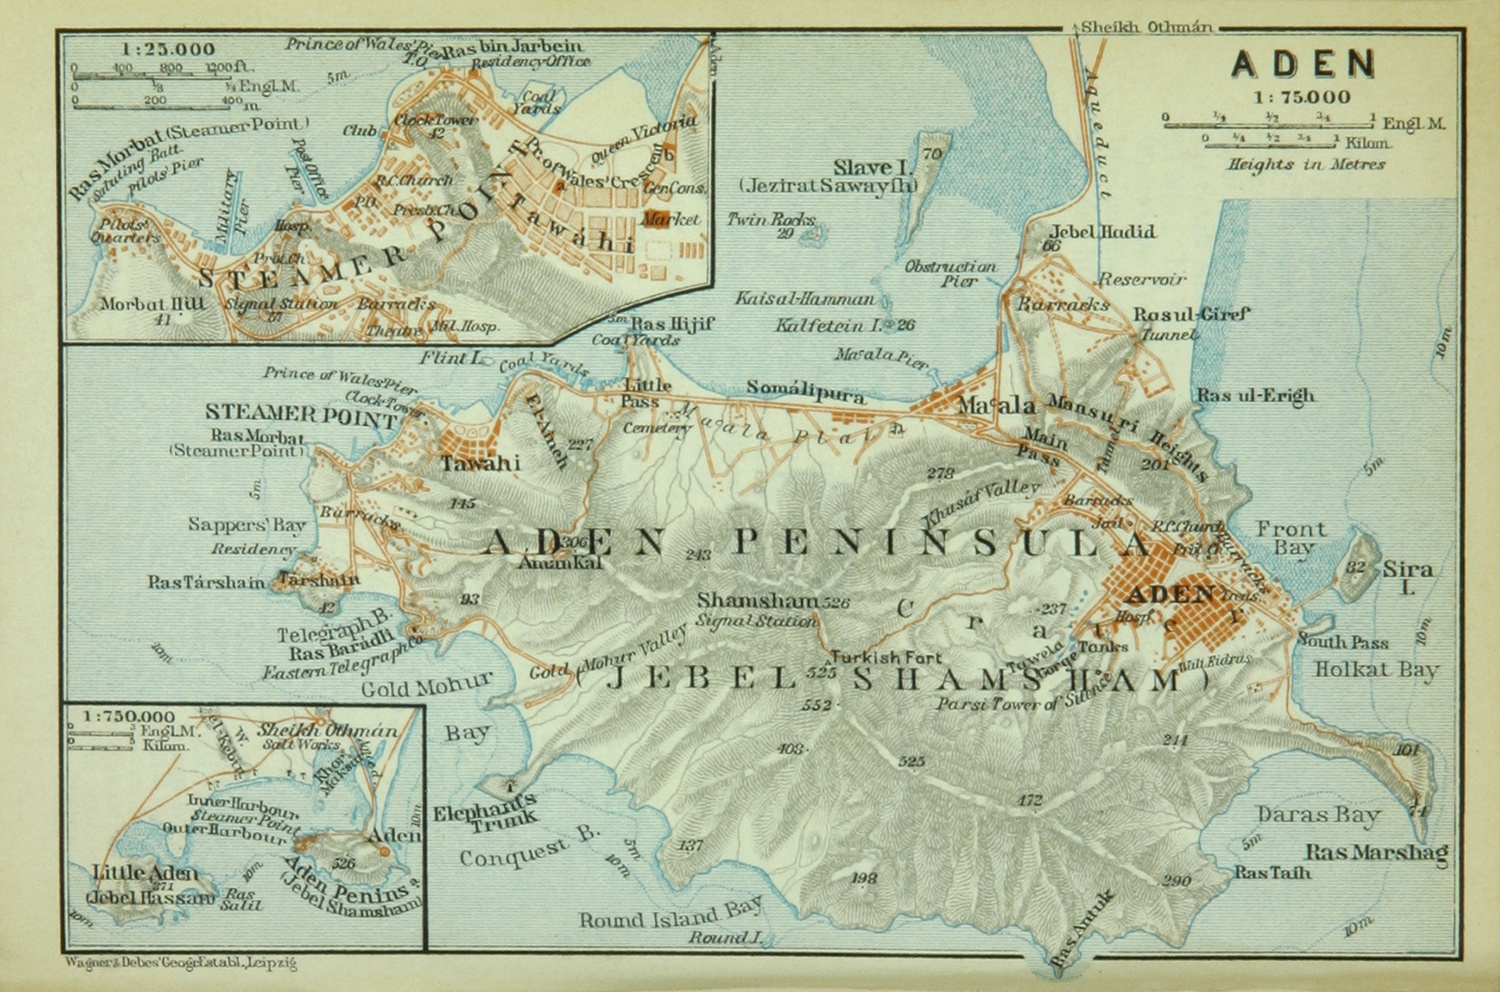 Map of Aden, 1914. The British port town where Nellie Bly came ashore is labeled as Steamer Point on the northwestern side of the peninsula, while the town of Aden proper is located on the western side. Courtesy of Wikimedia Commons.